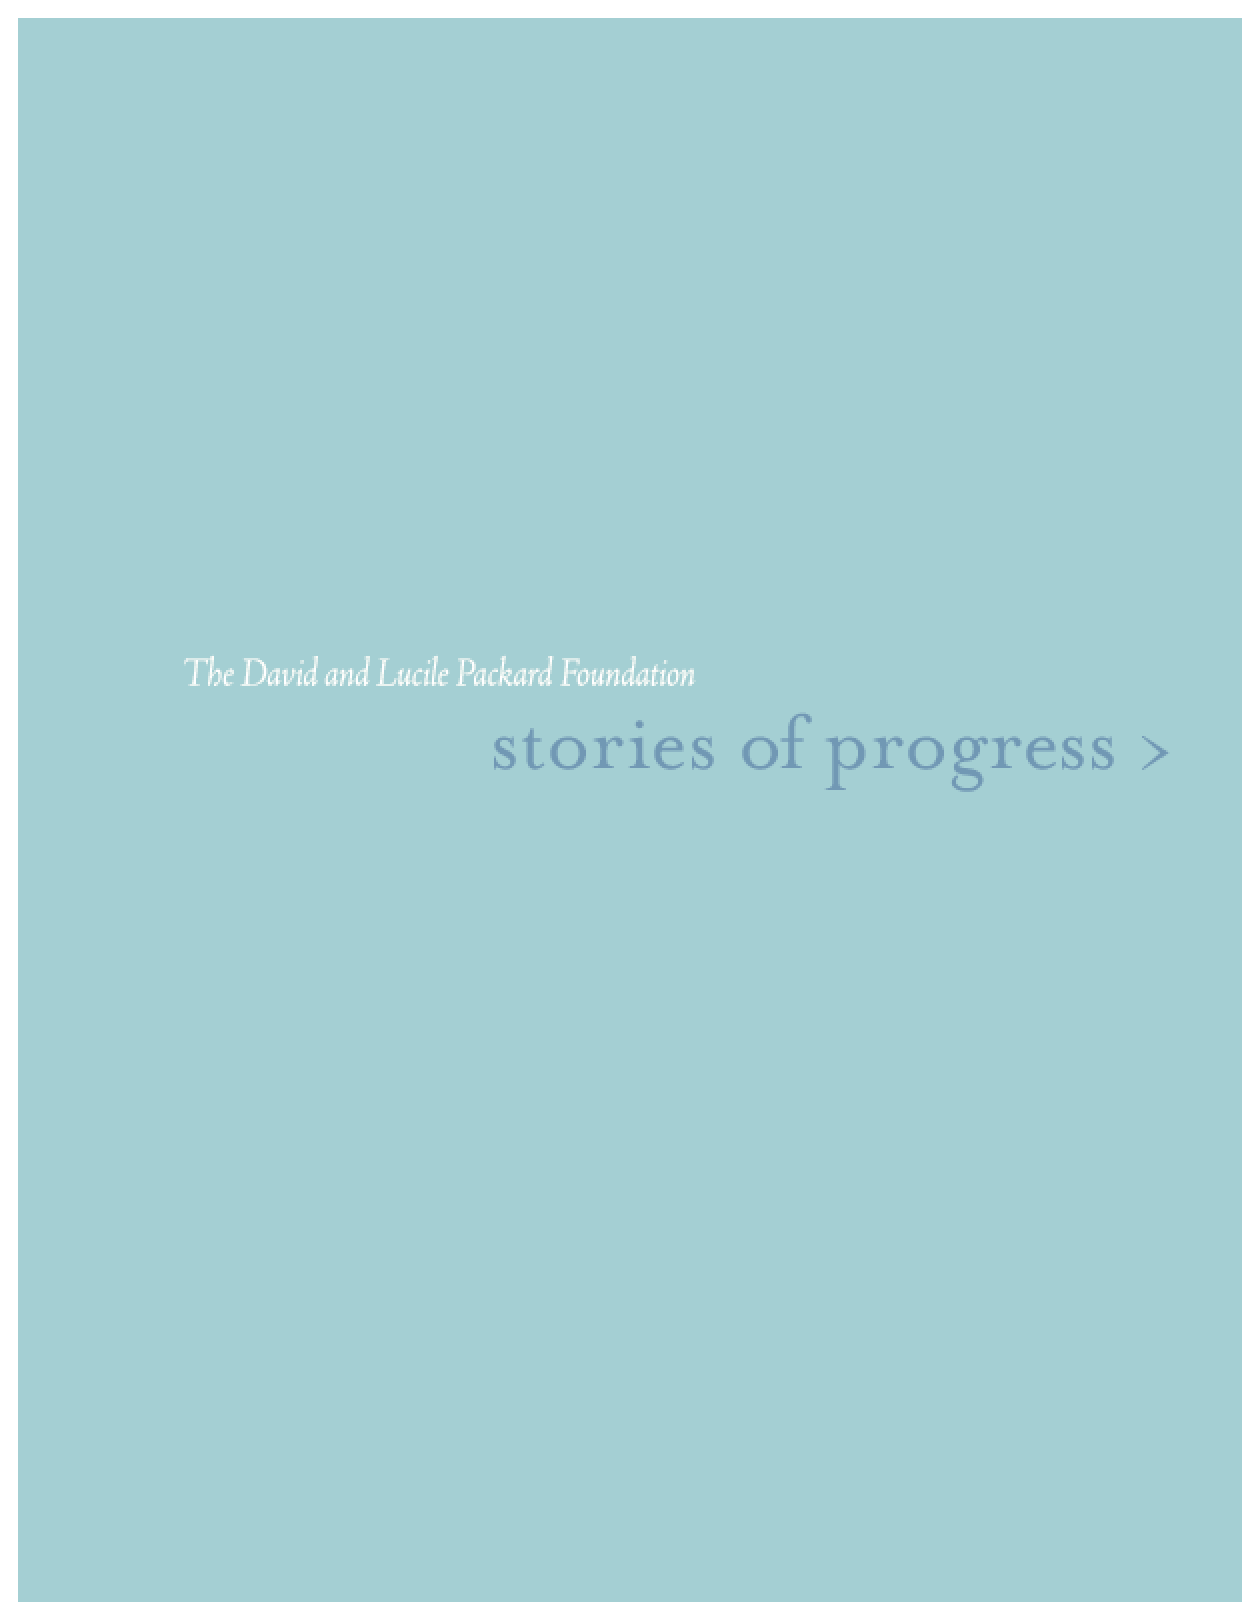 Stories of Progress